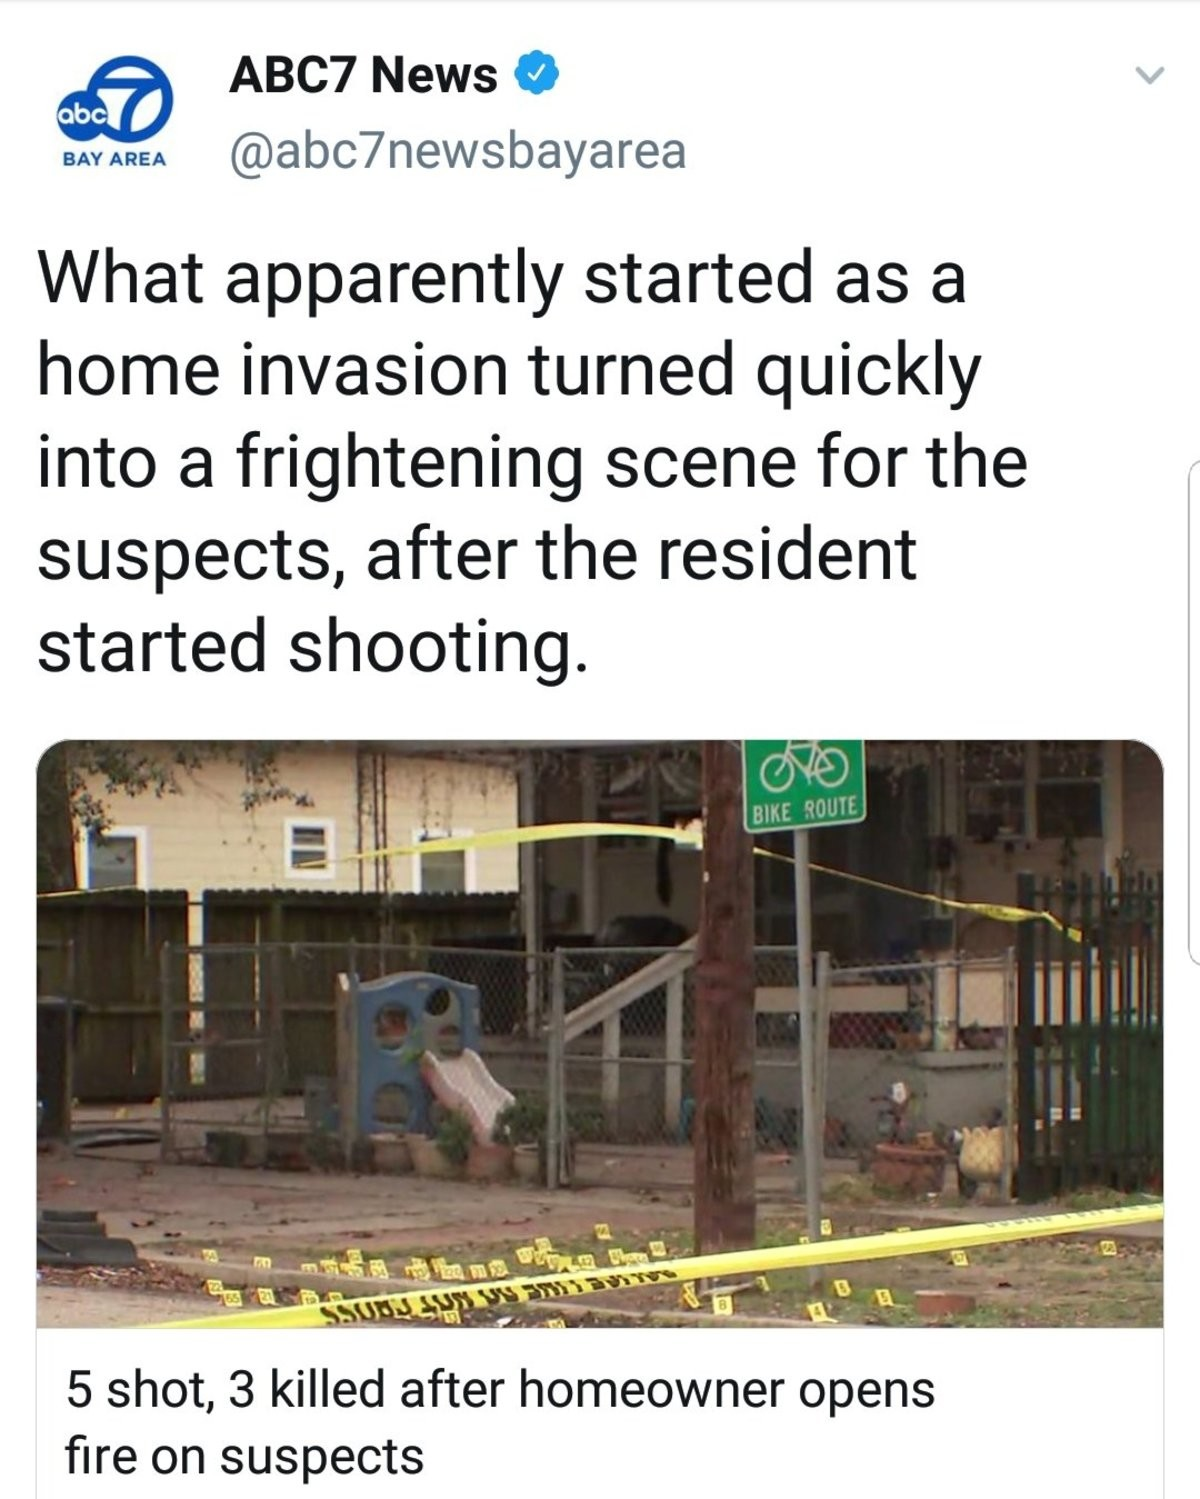 Frightening scene. It's Frightening for the residents!! I don't give any how scared the Intruders are... Poor criminals, always being shot at for commiting crimes and threatening innocent homeowners